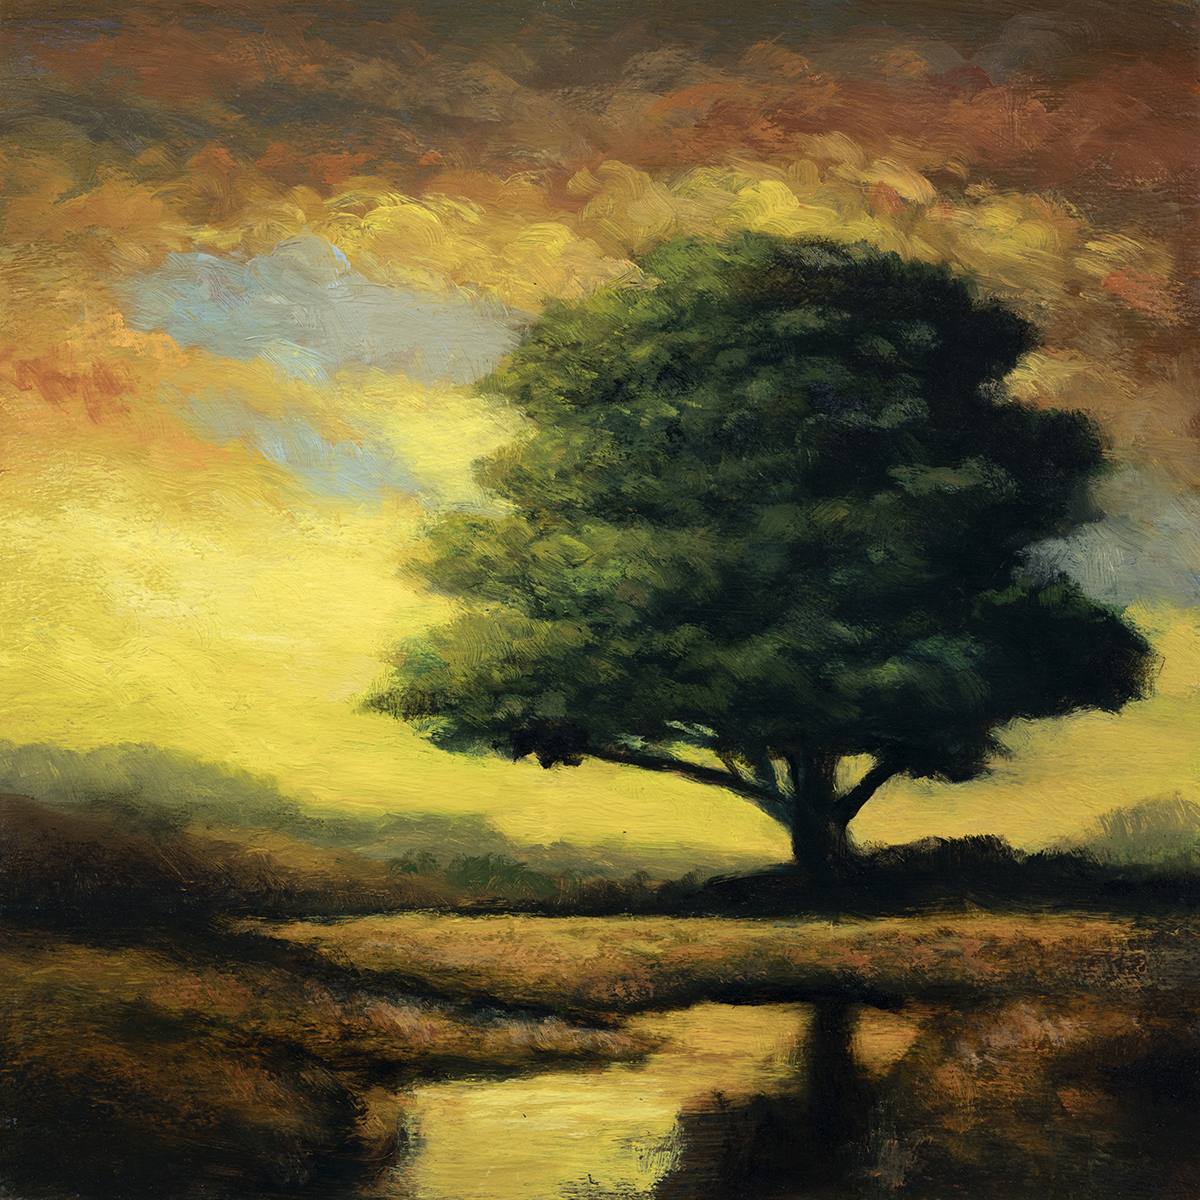 Morning Light by M Francis McCarthy - 8x8 Oil on Wood Panel